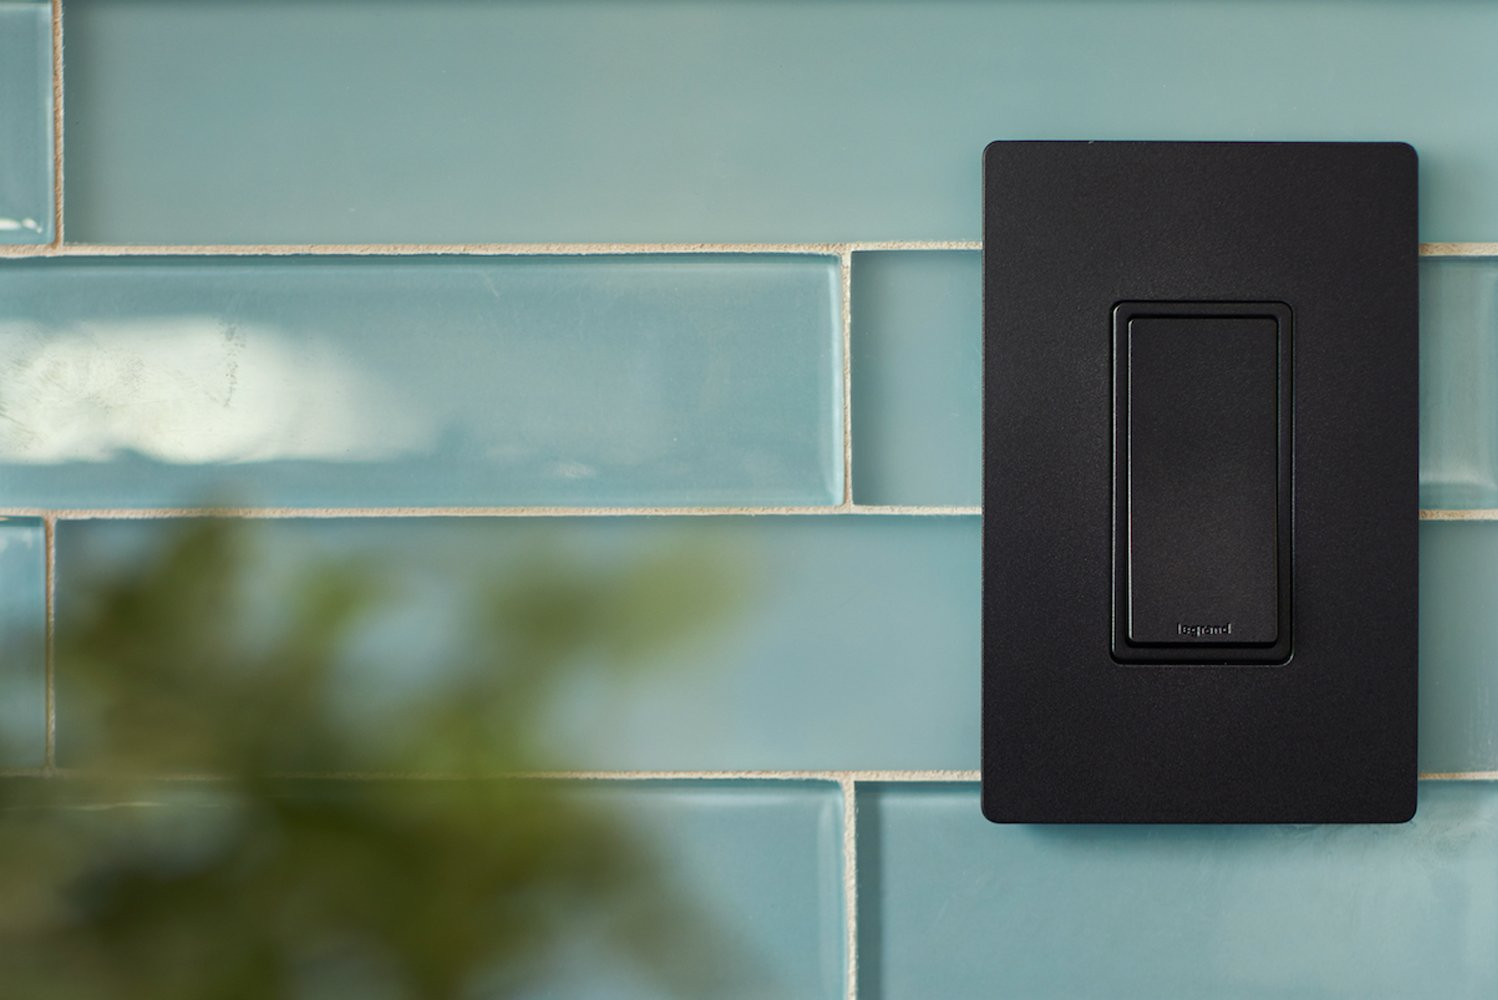 Legrand launched two new collections, expanding its offerings of connectivity, lighting and power solutions with two new wall plate finishes: mirror and graphite.